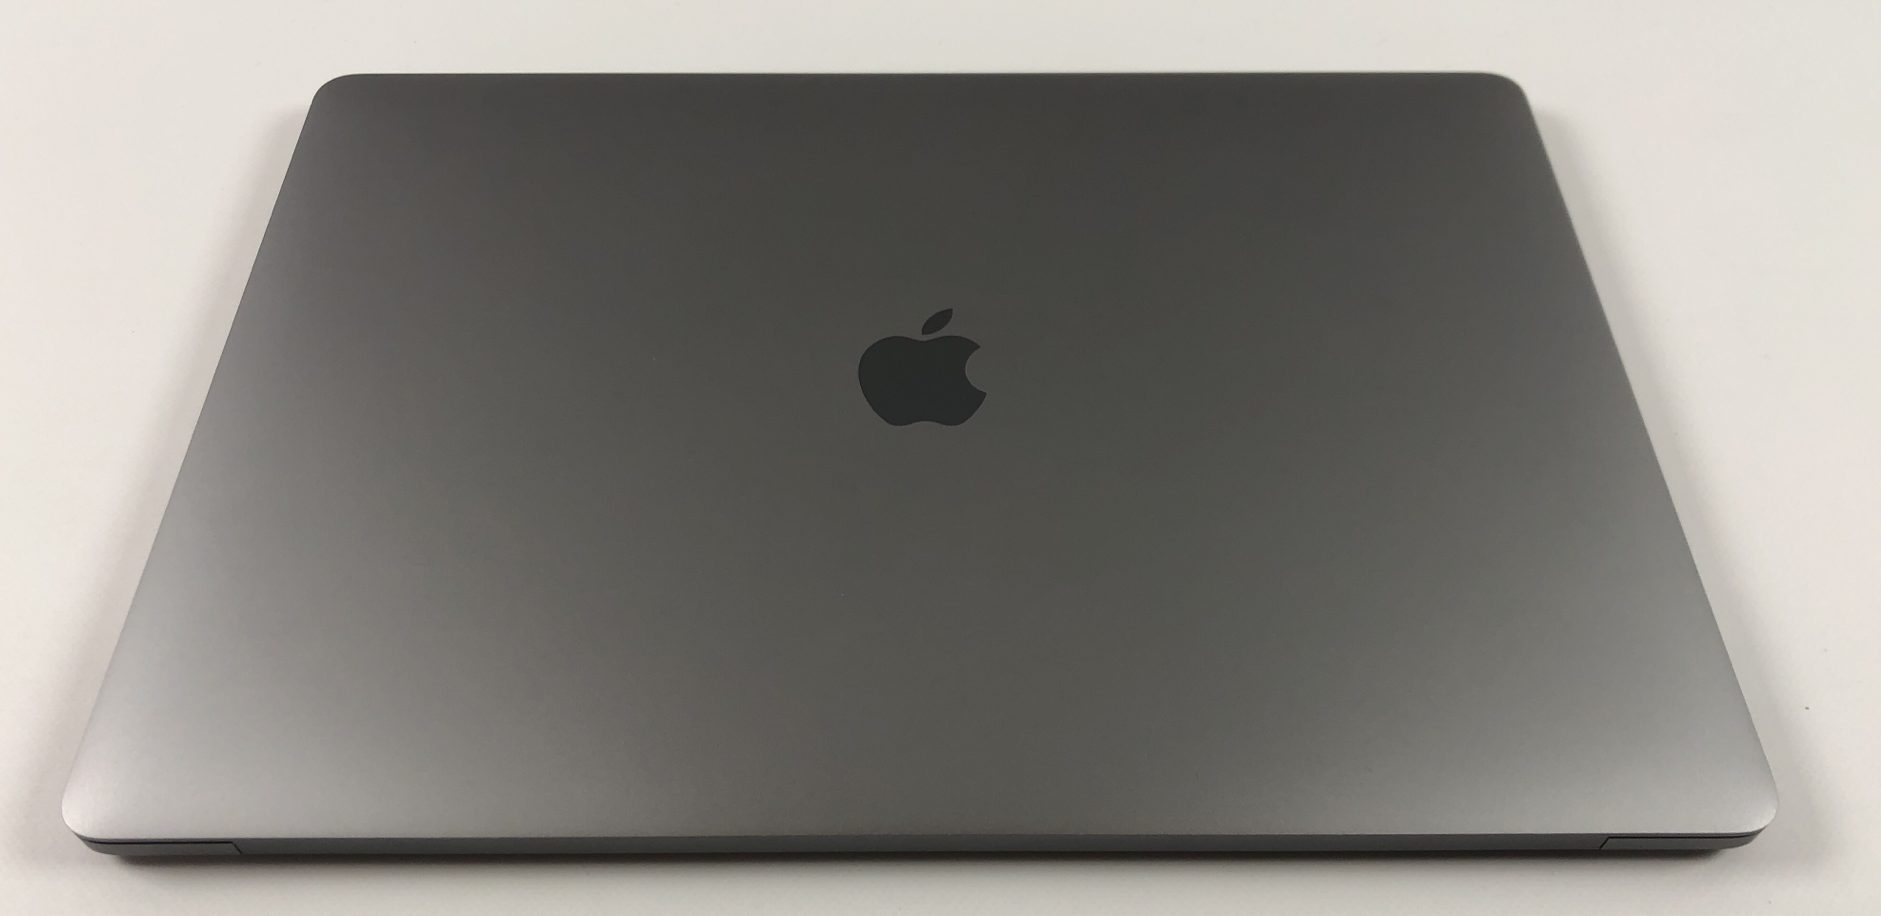 "MacBook Pro 15"" Touch Bar Late 2016 (Intel Quad-Core i7 2.7 GHz 16 GB RAM 512 GB SSD), Space Gray, Intel Quad-Core i7 2.7 GHz, 16 GB RAM, 512 GB SSD, Bild 2"